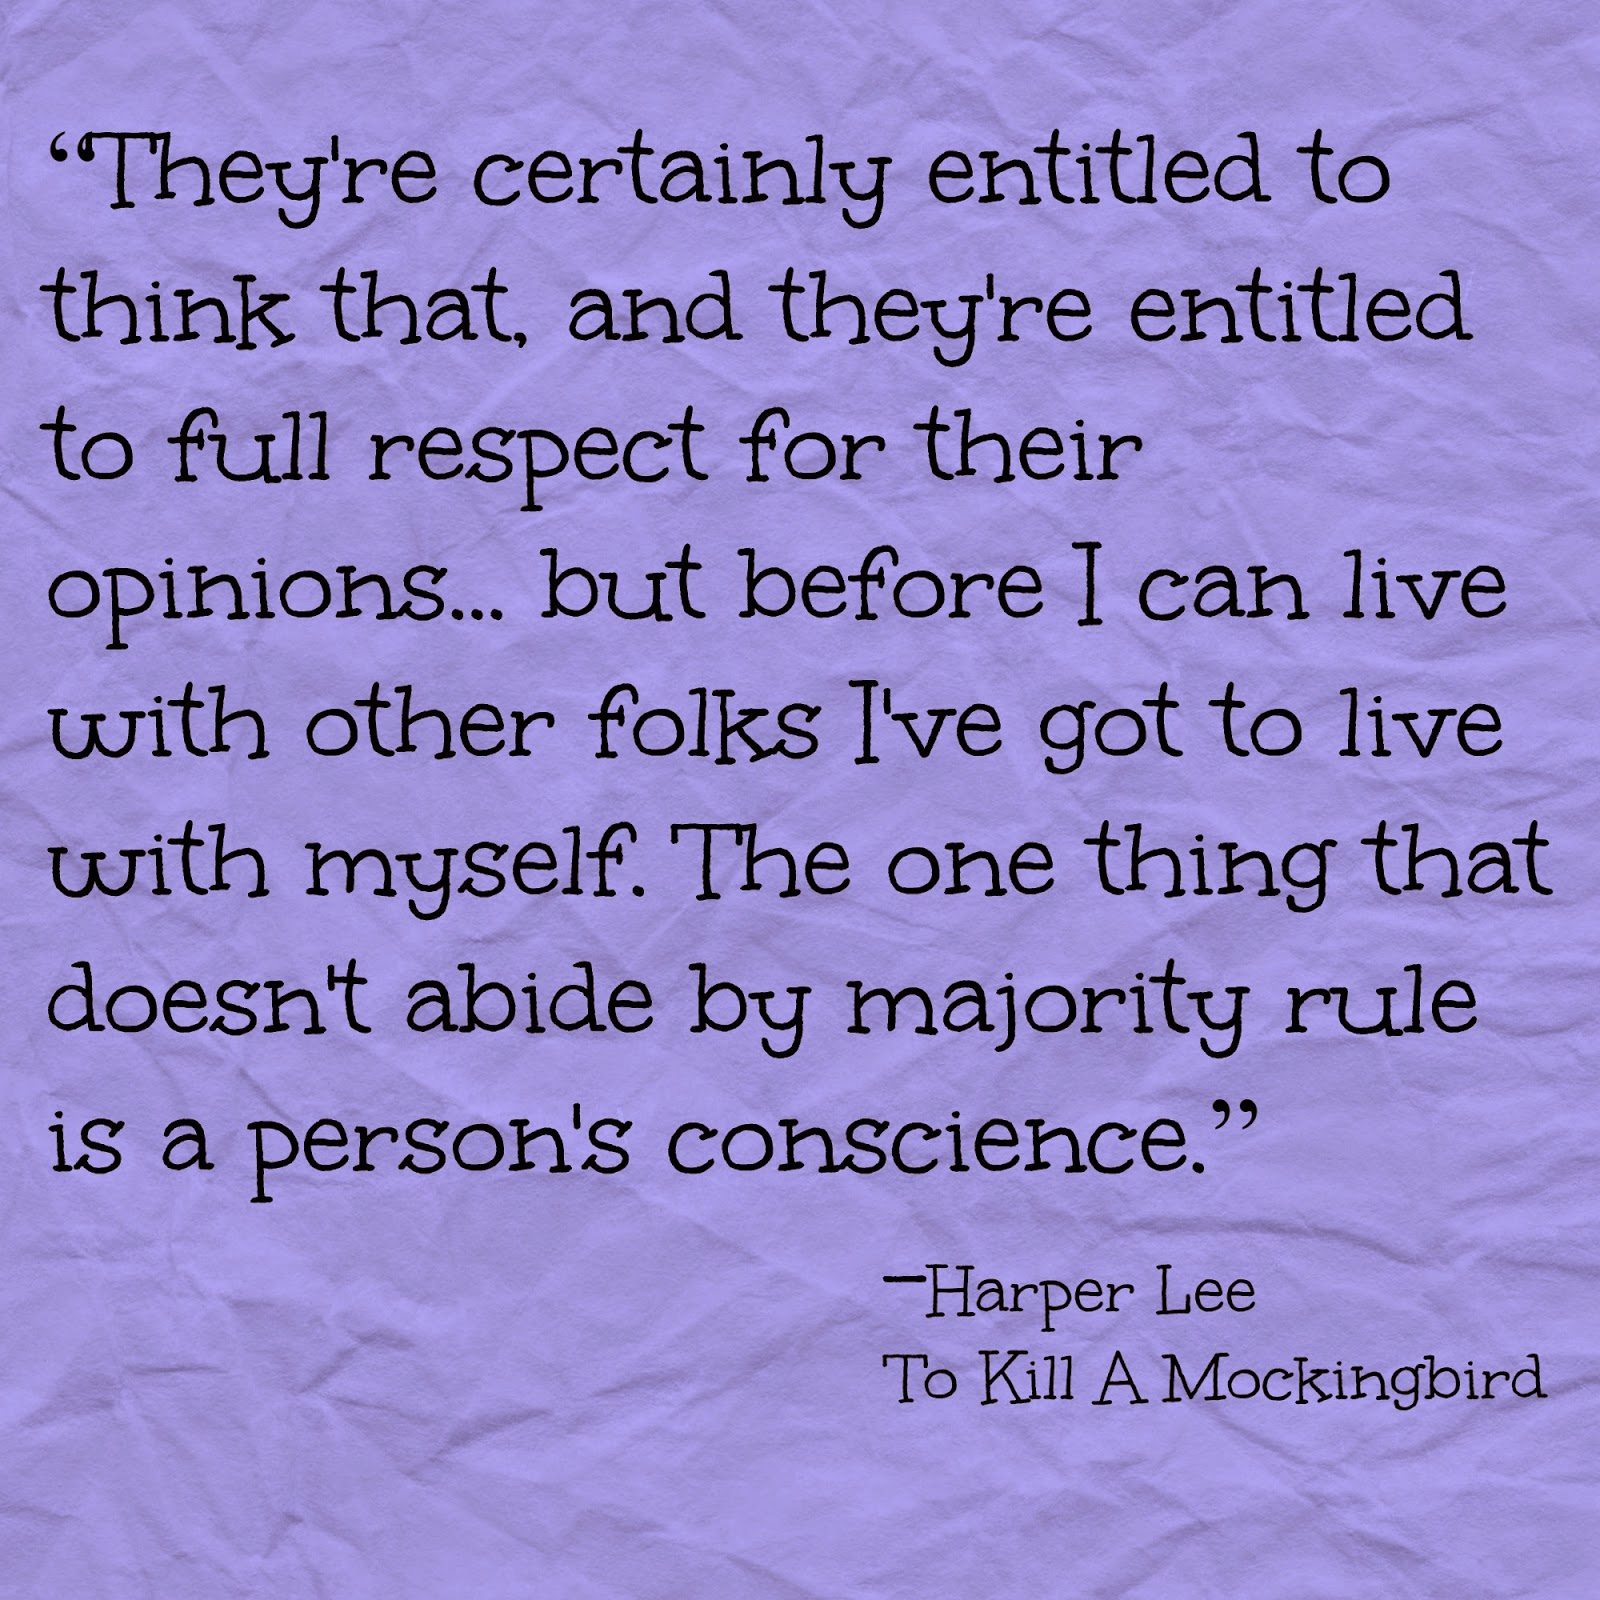 Conscience doesn't abide majority rule quote from To Kill A Mockingbird by Harper Lee